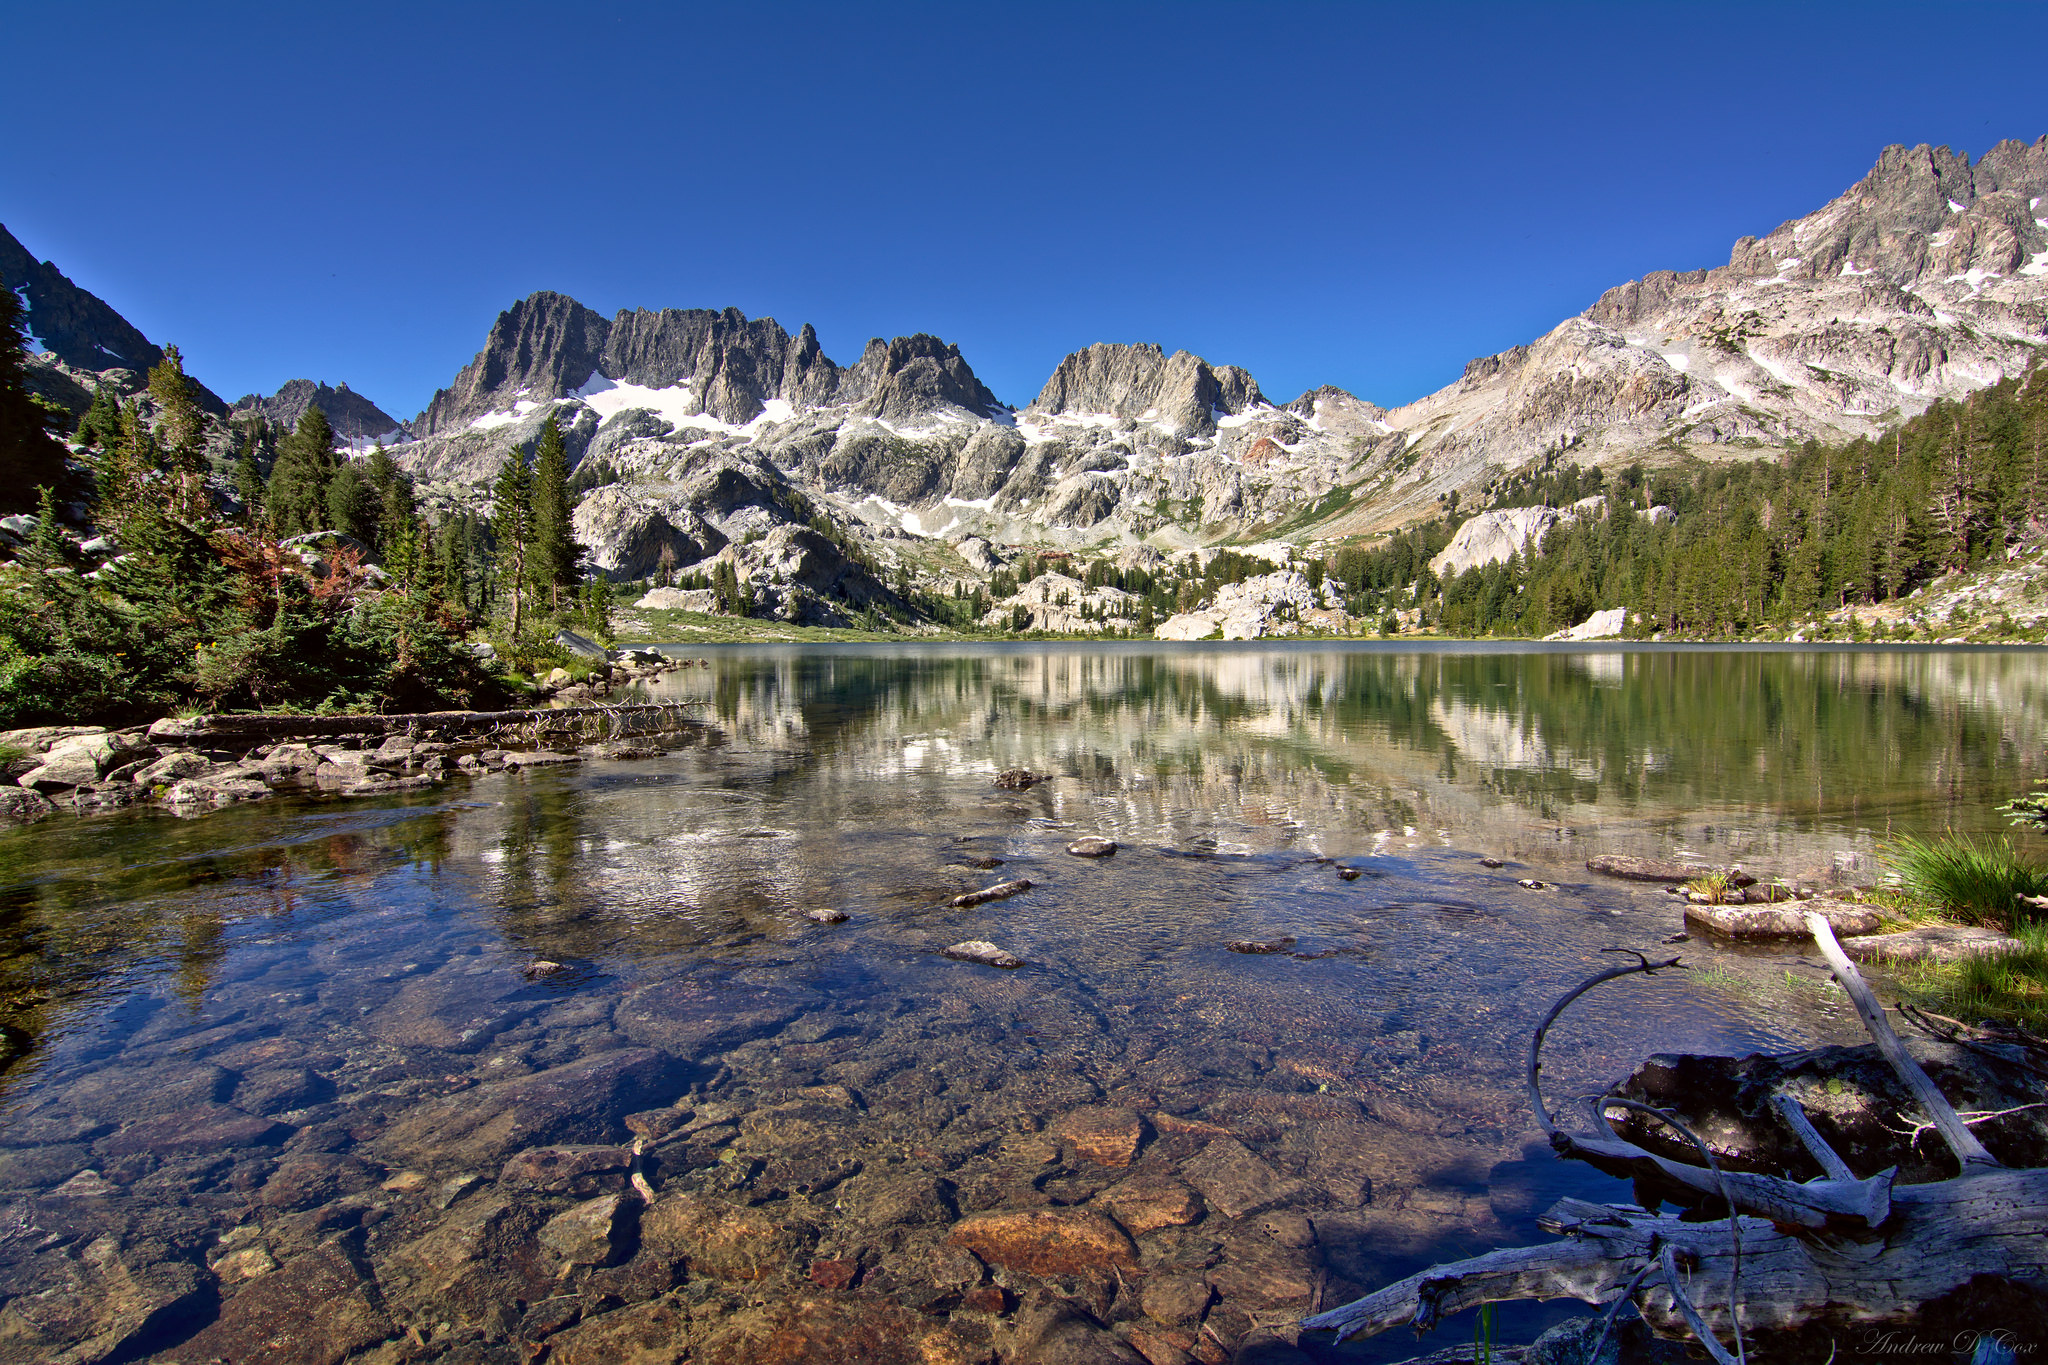 A picture of a beautiful lake below the Minarets (mountains) in the Ansel Adam Wilderness Inyo National Forest, California.